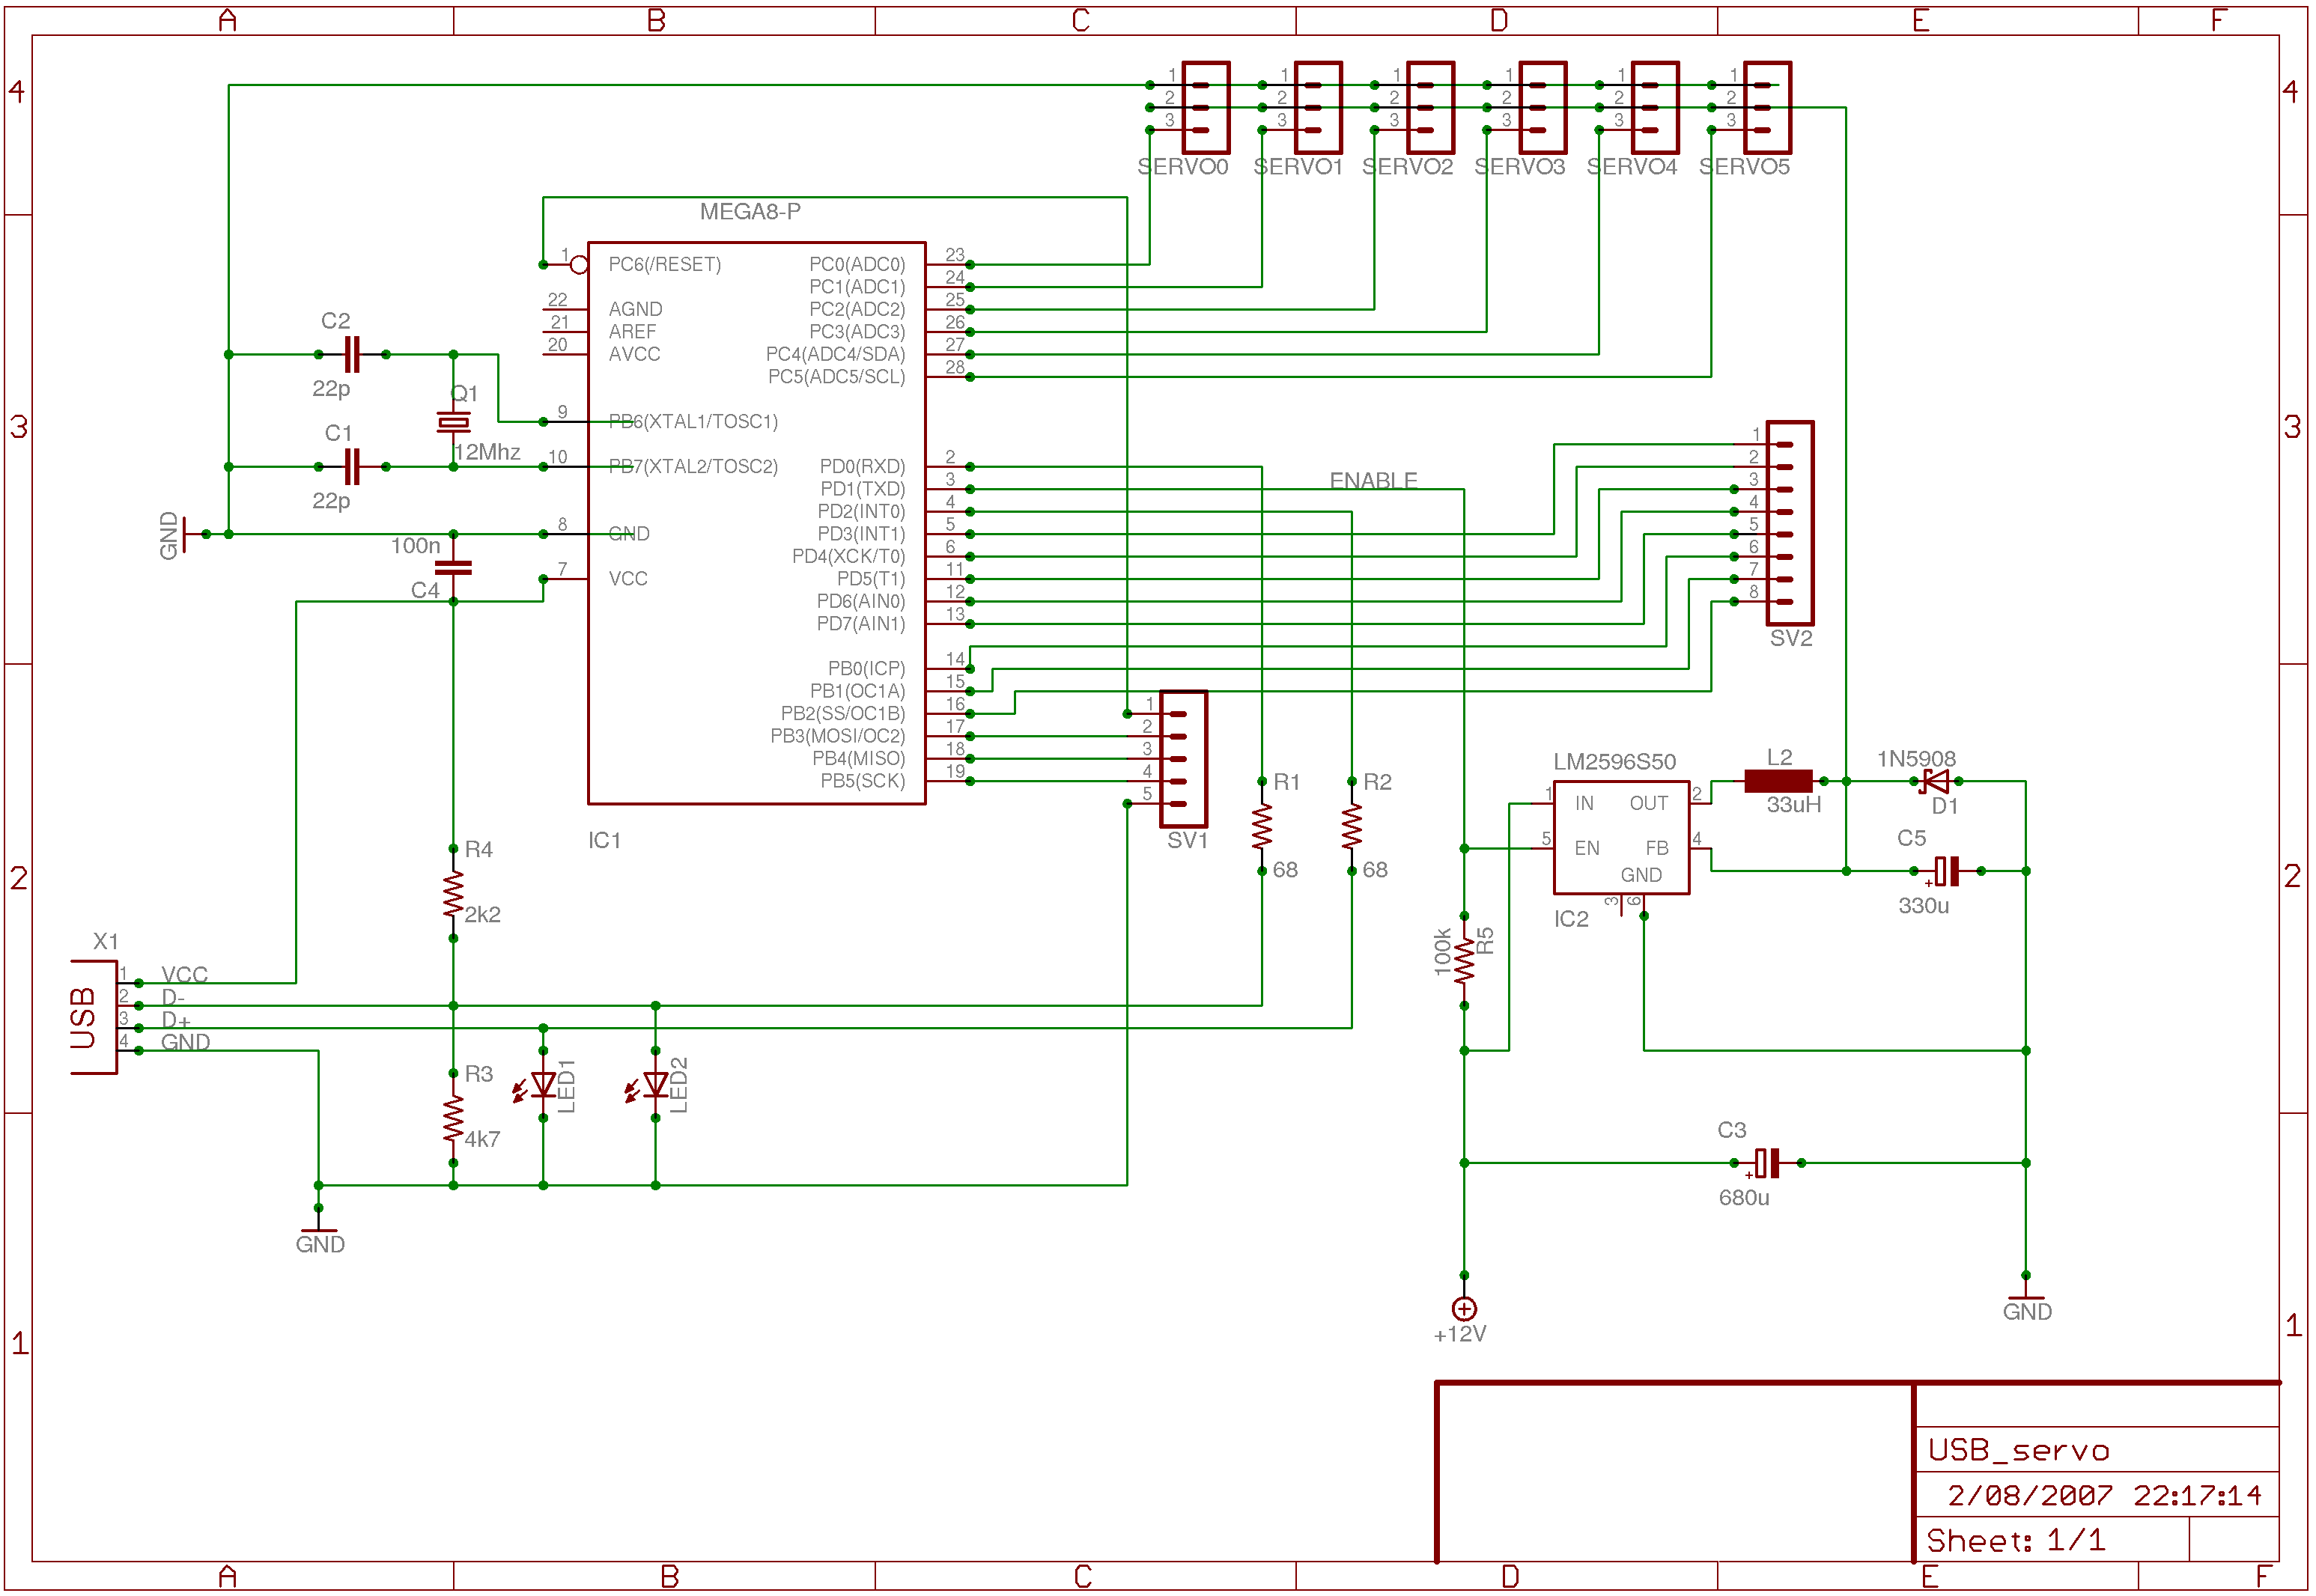 USB-servo-2 schematic | DIY and crafts | Pic microcontroller ... on